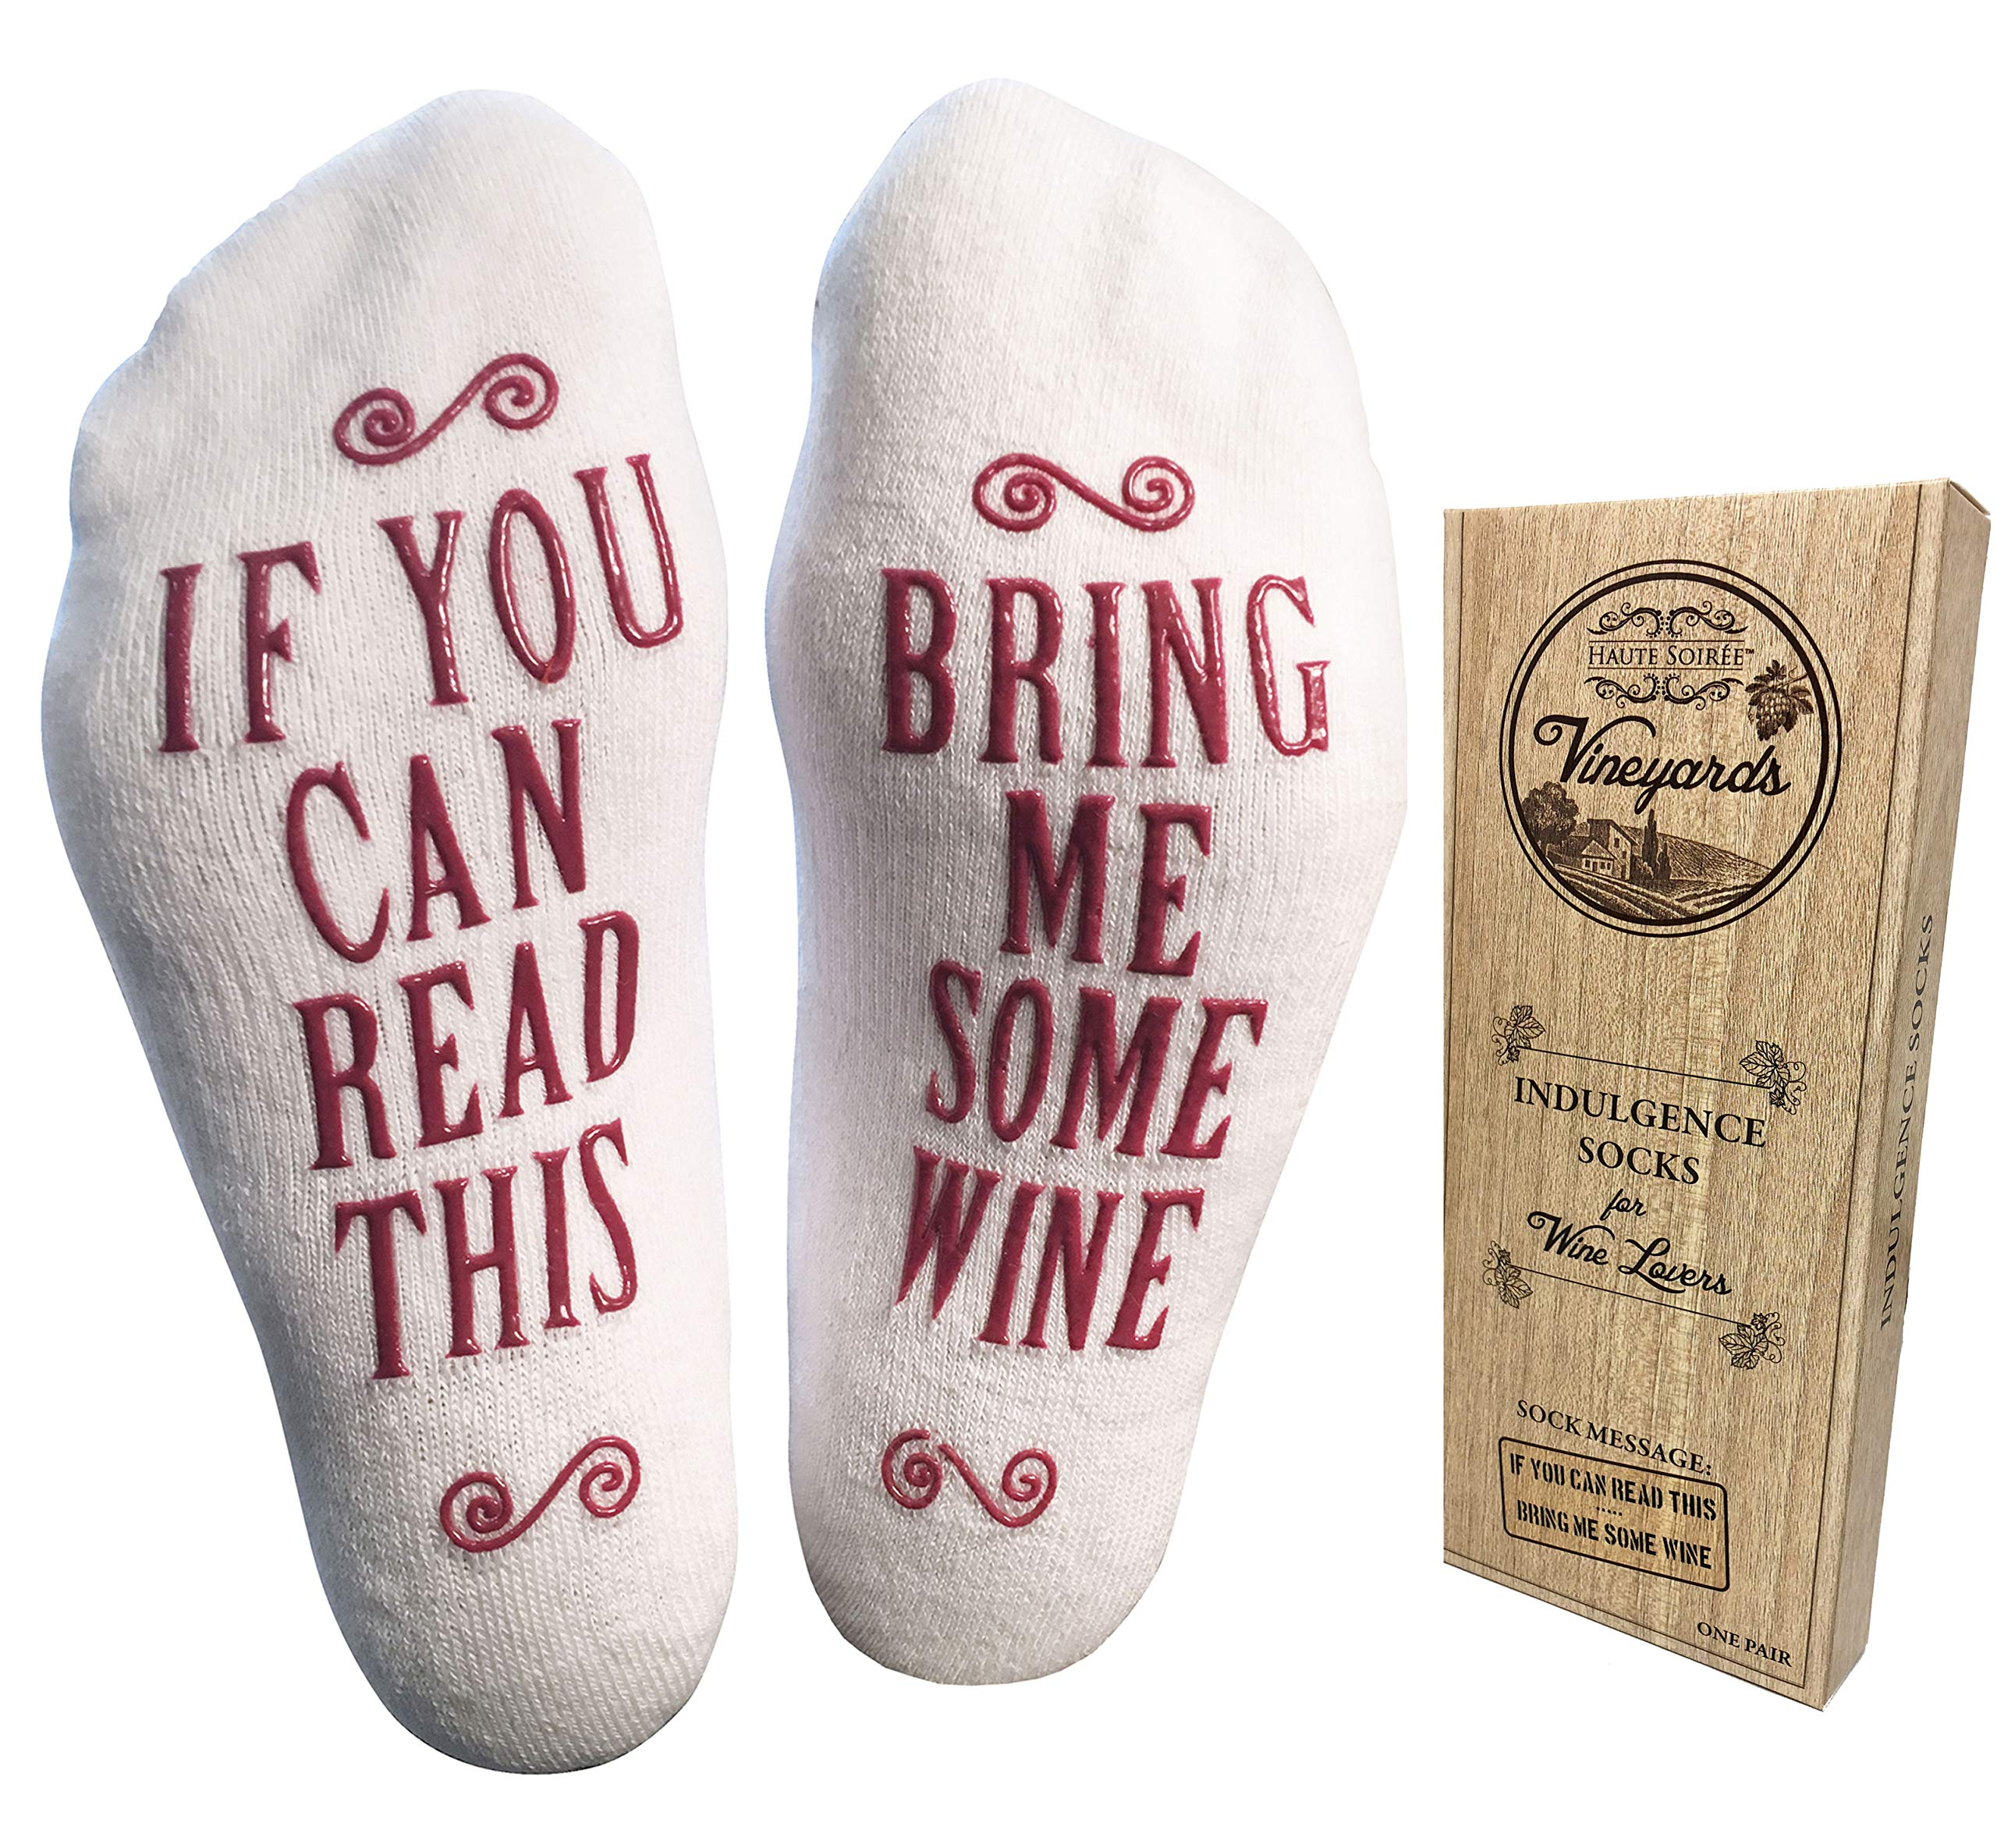 Luxury Combed Cotton  Bring Me Some Wine  Socks - Perfect Hostess or Housewarming Gift  sc 1 st  Amazon UK & Gifts for Her Under 10 Pounds: Amazon.co.uk